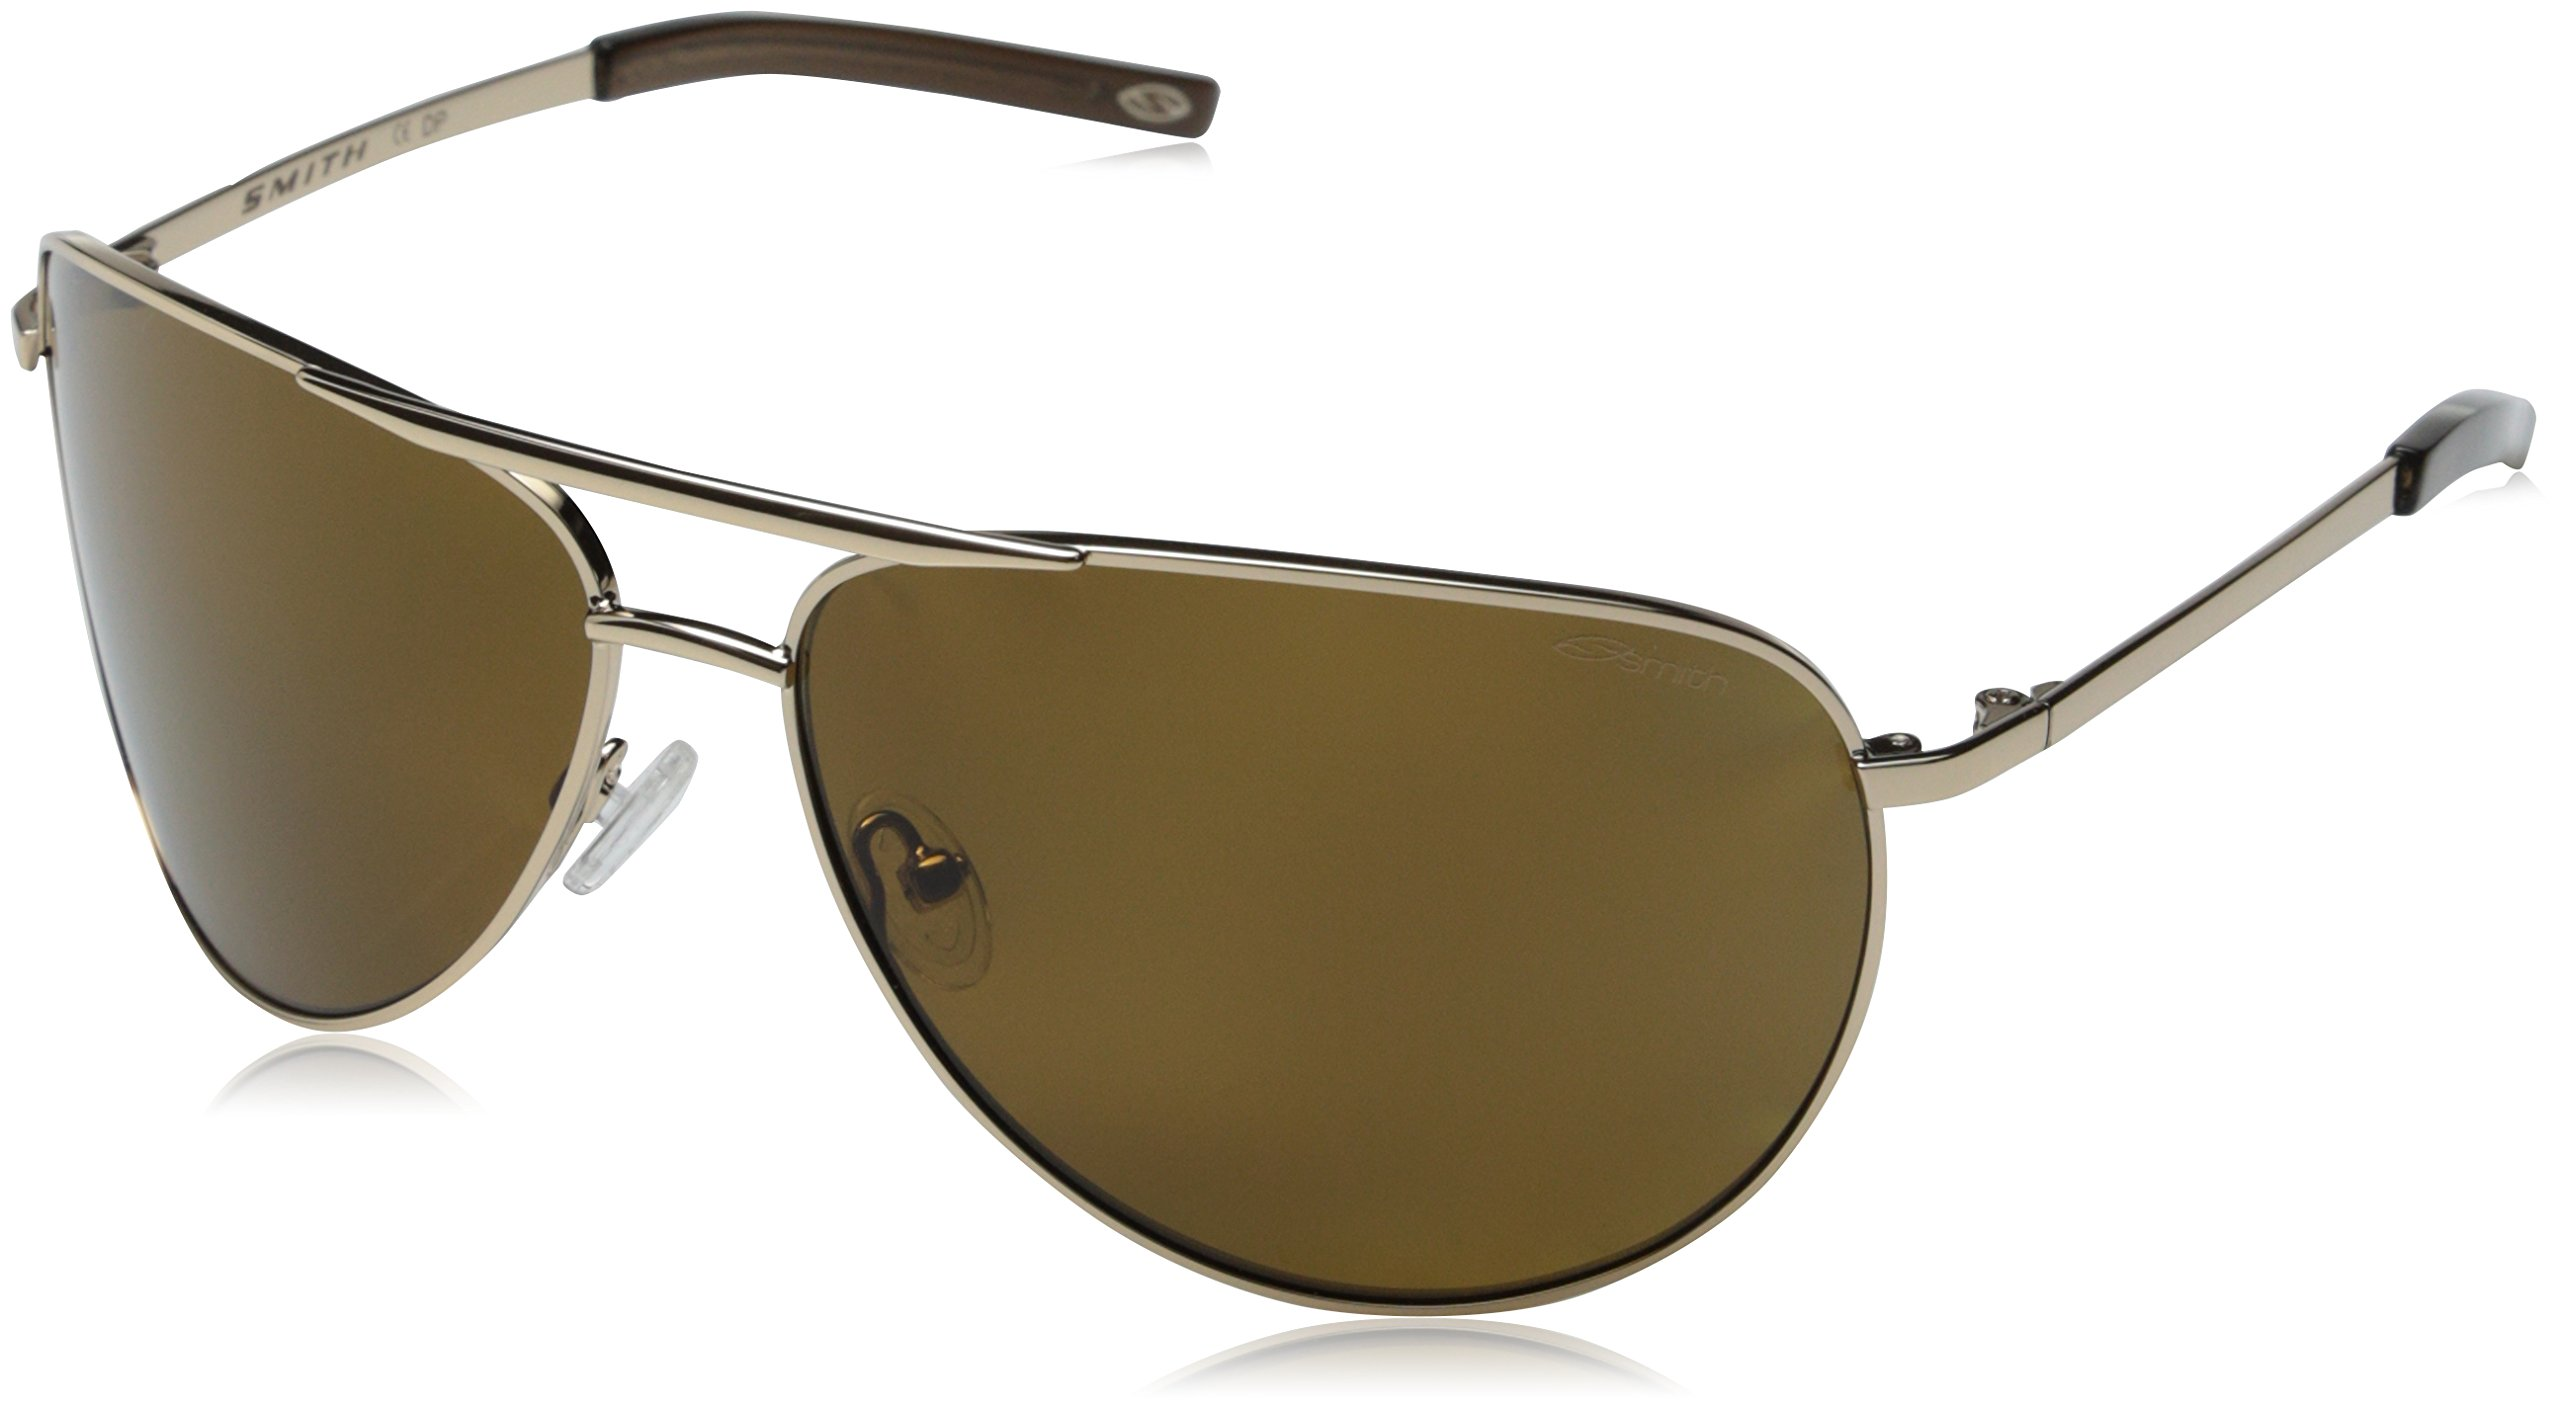 Smith Optics Serpico Sunglasses (Gold with Polarized Brown Lens)